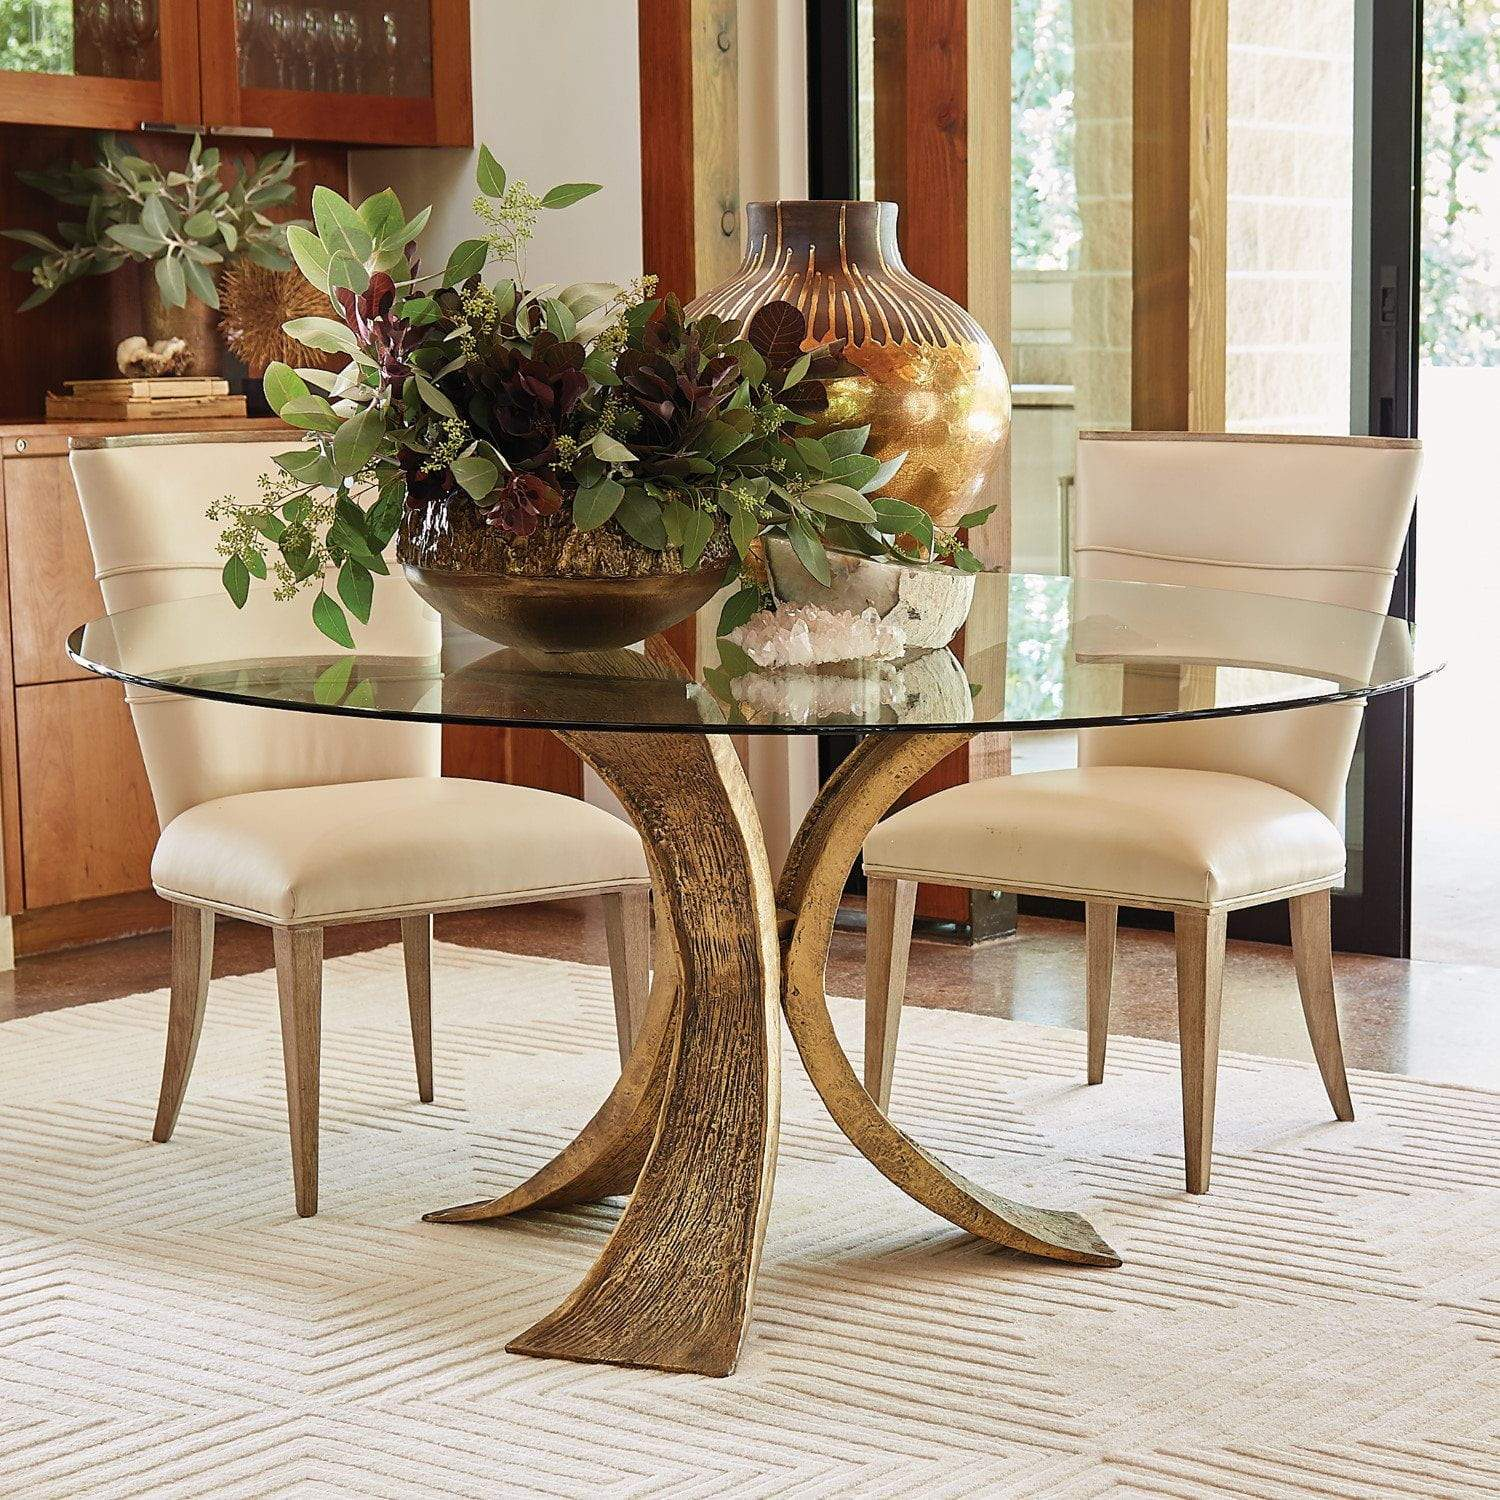 Global Views Lotus Dining Table Base-Antique Gold/Bronze